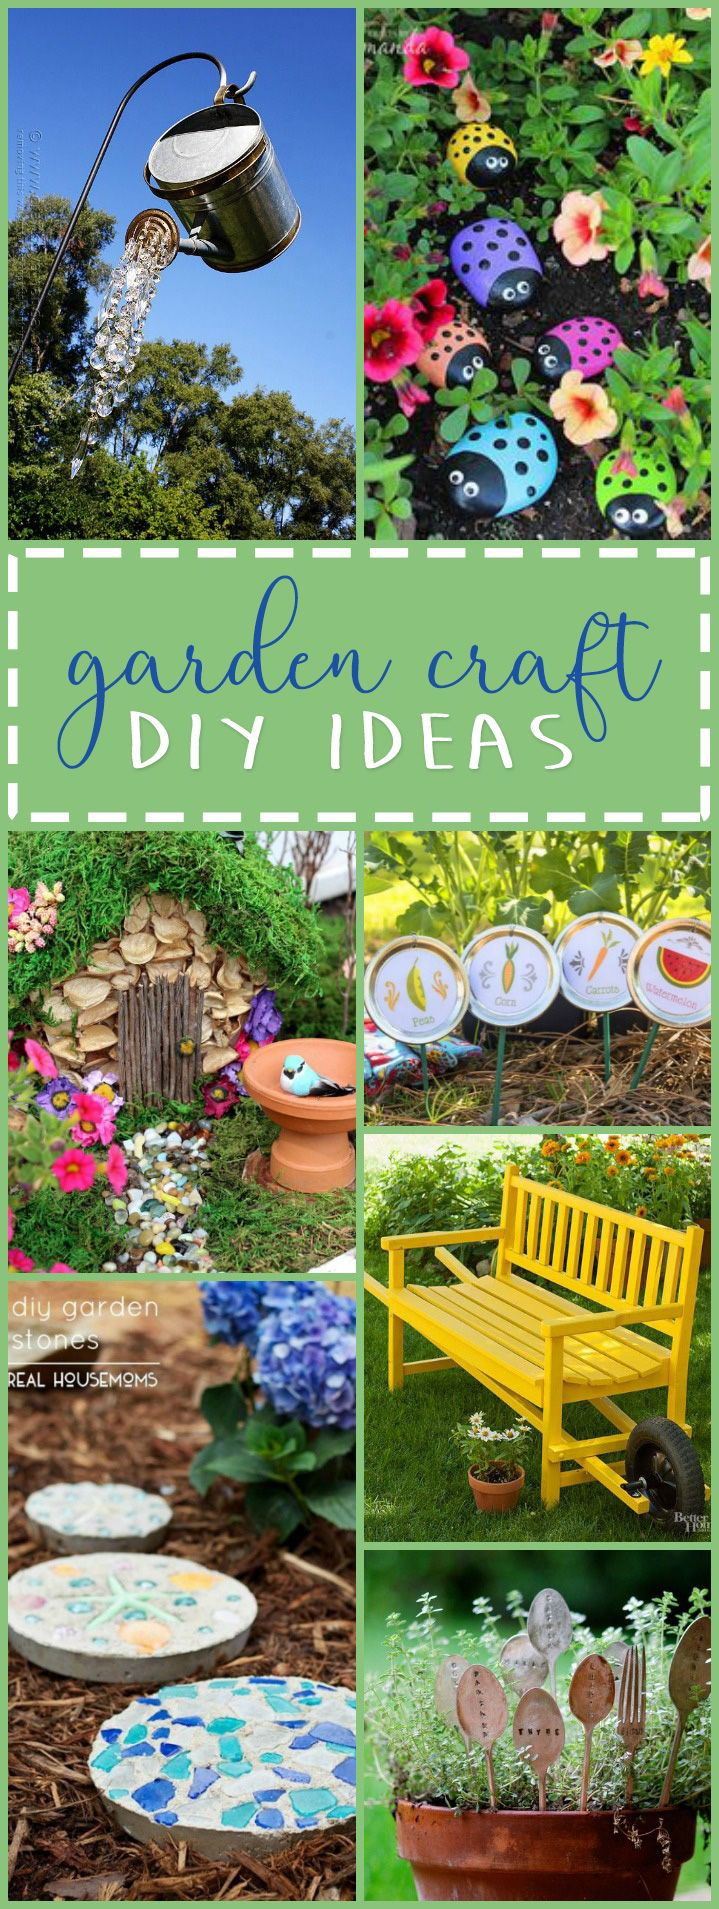 20 Super Creative Garden Spaces Ideas For Kids These Are So Cool Can I Be A Kid Again Please